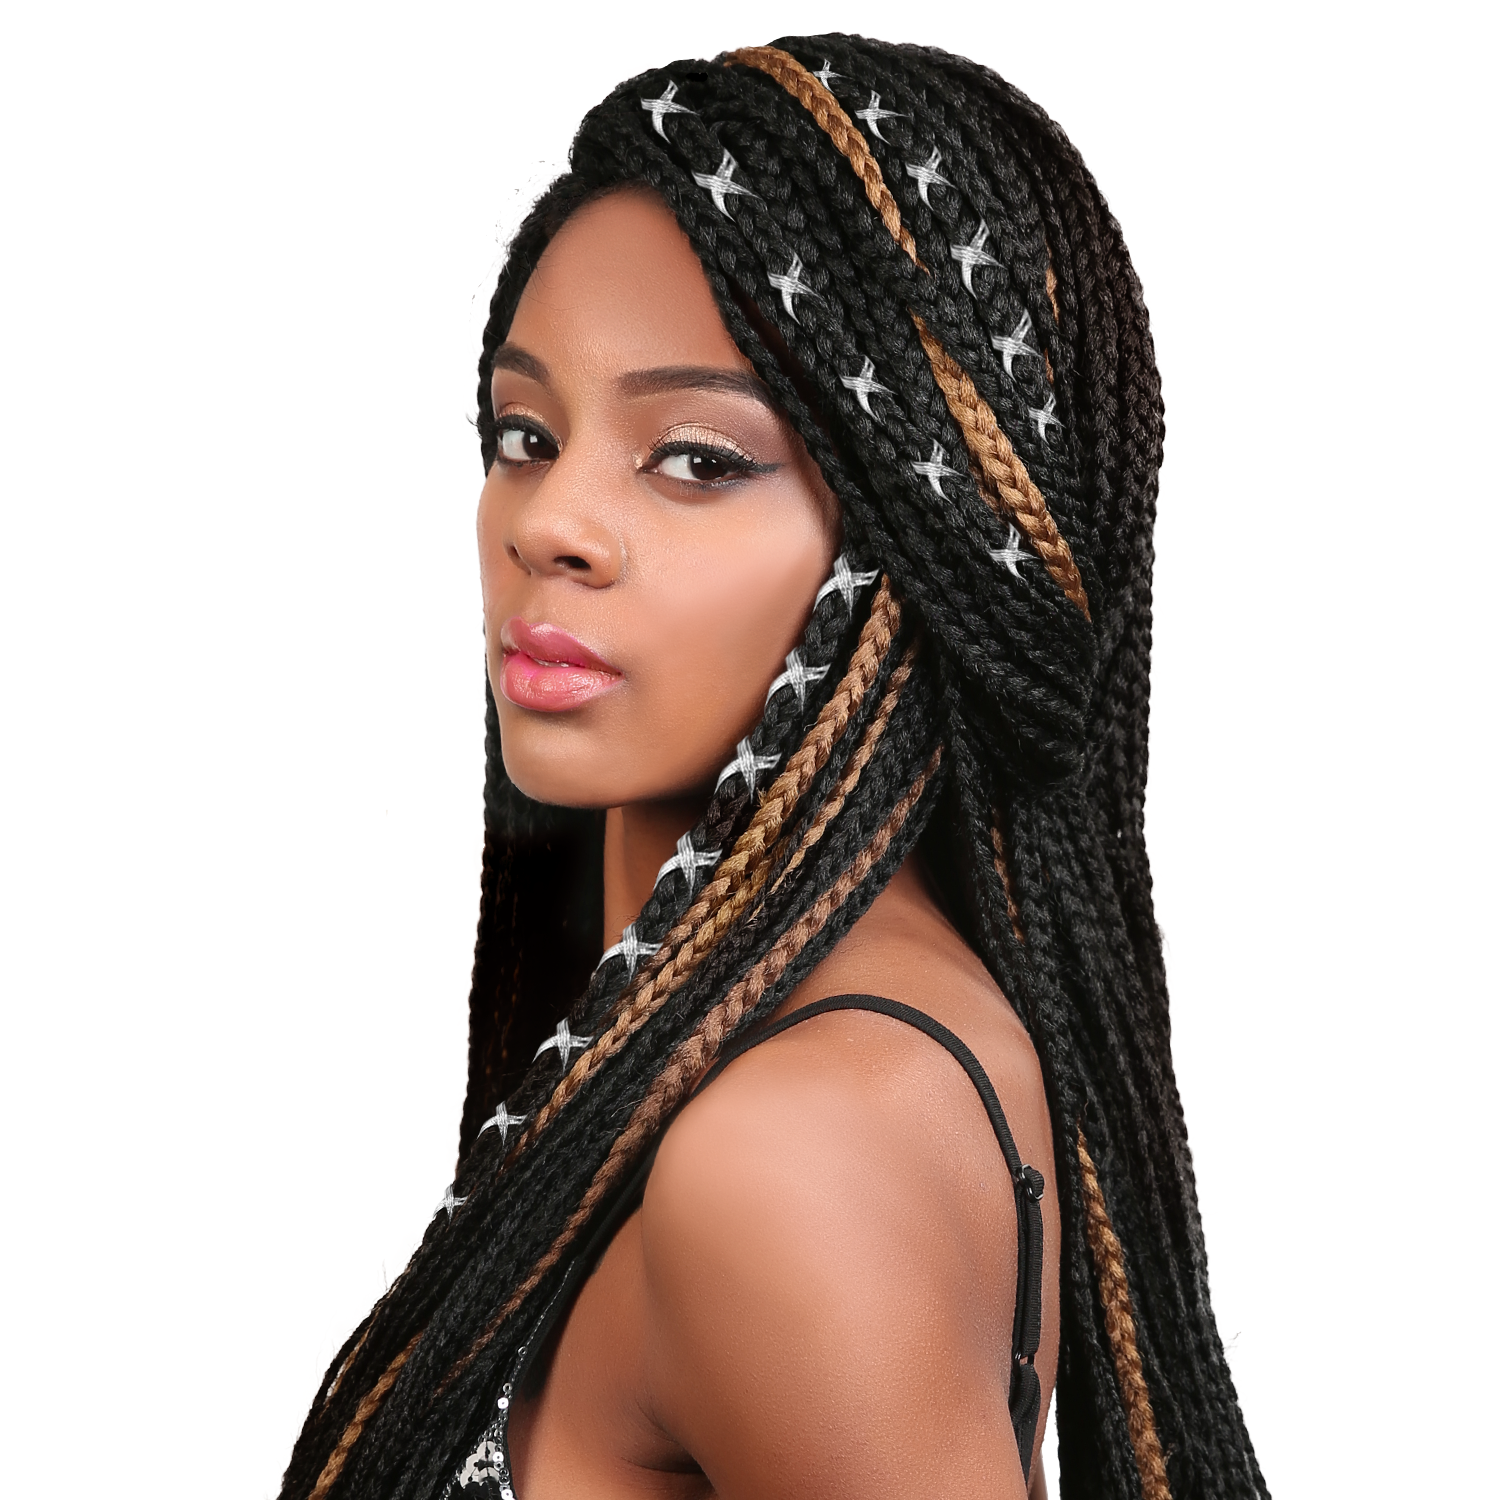 Hair,Hairstyle,Eyebrow,Black hair,Beauty,Cornrows,Dreadlocks,Braid.